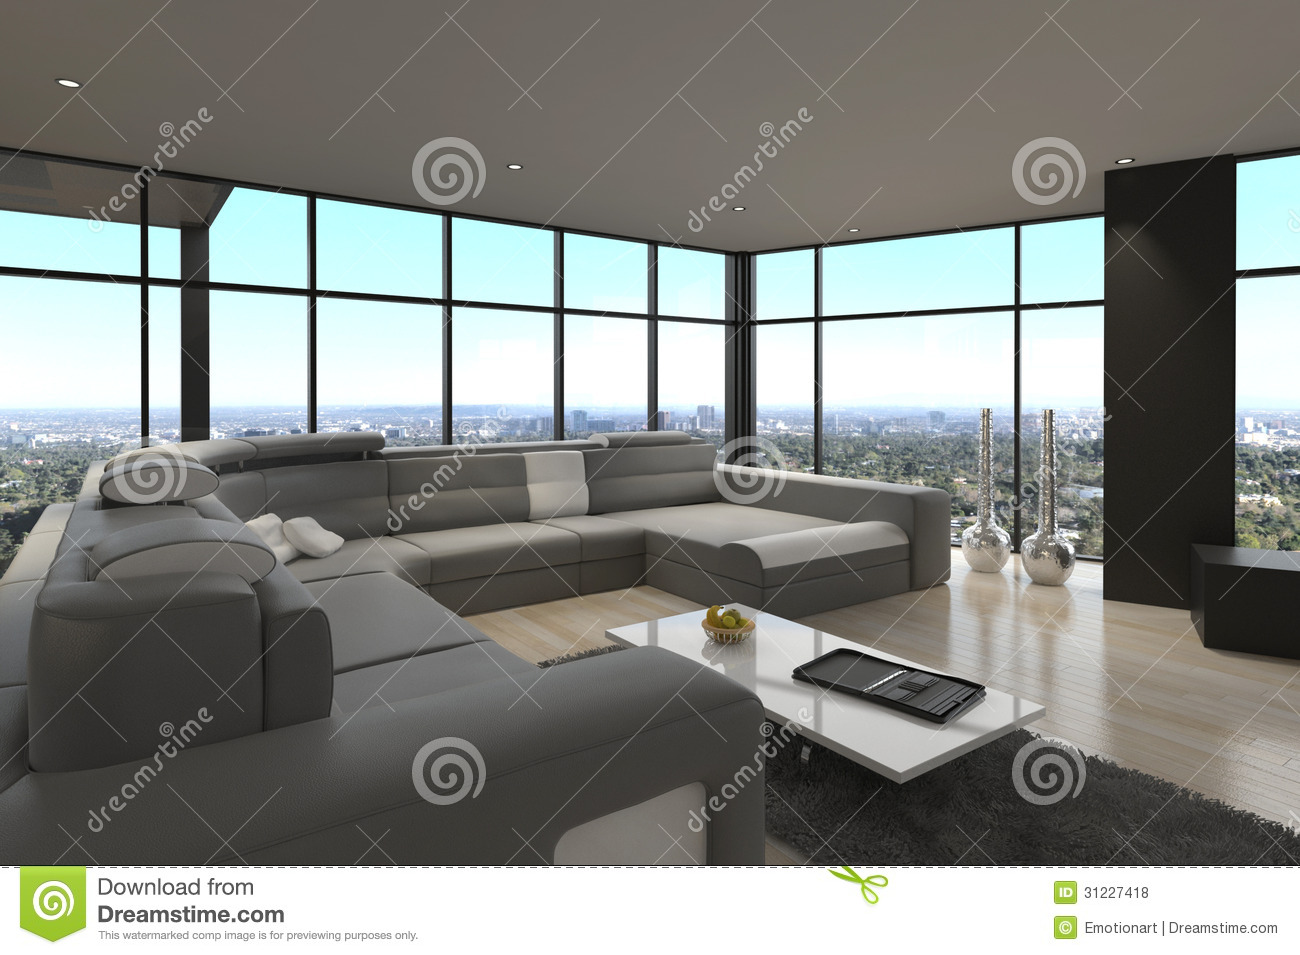 Awesome modern loft living room architecture interior stock